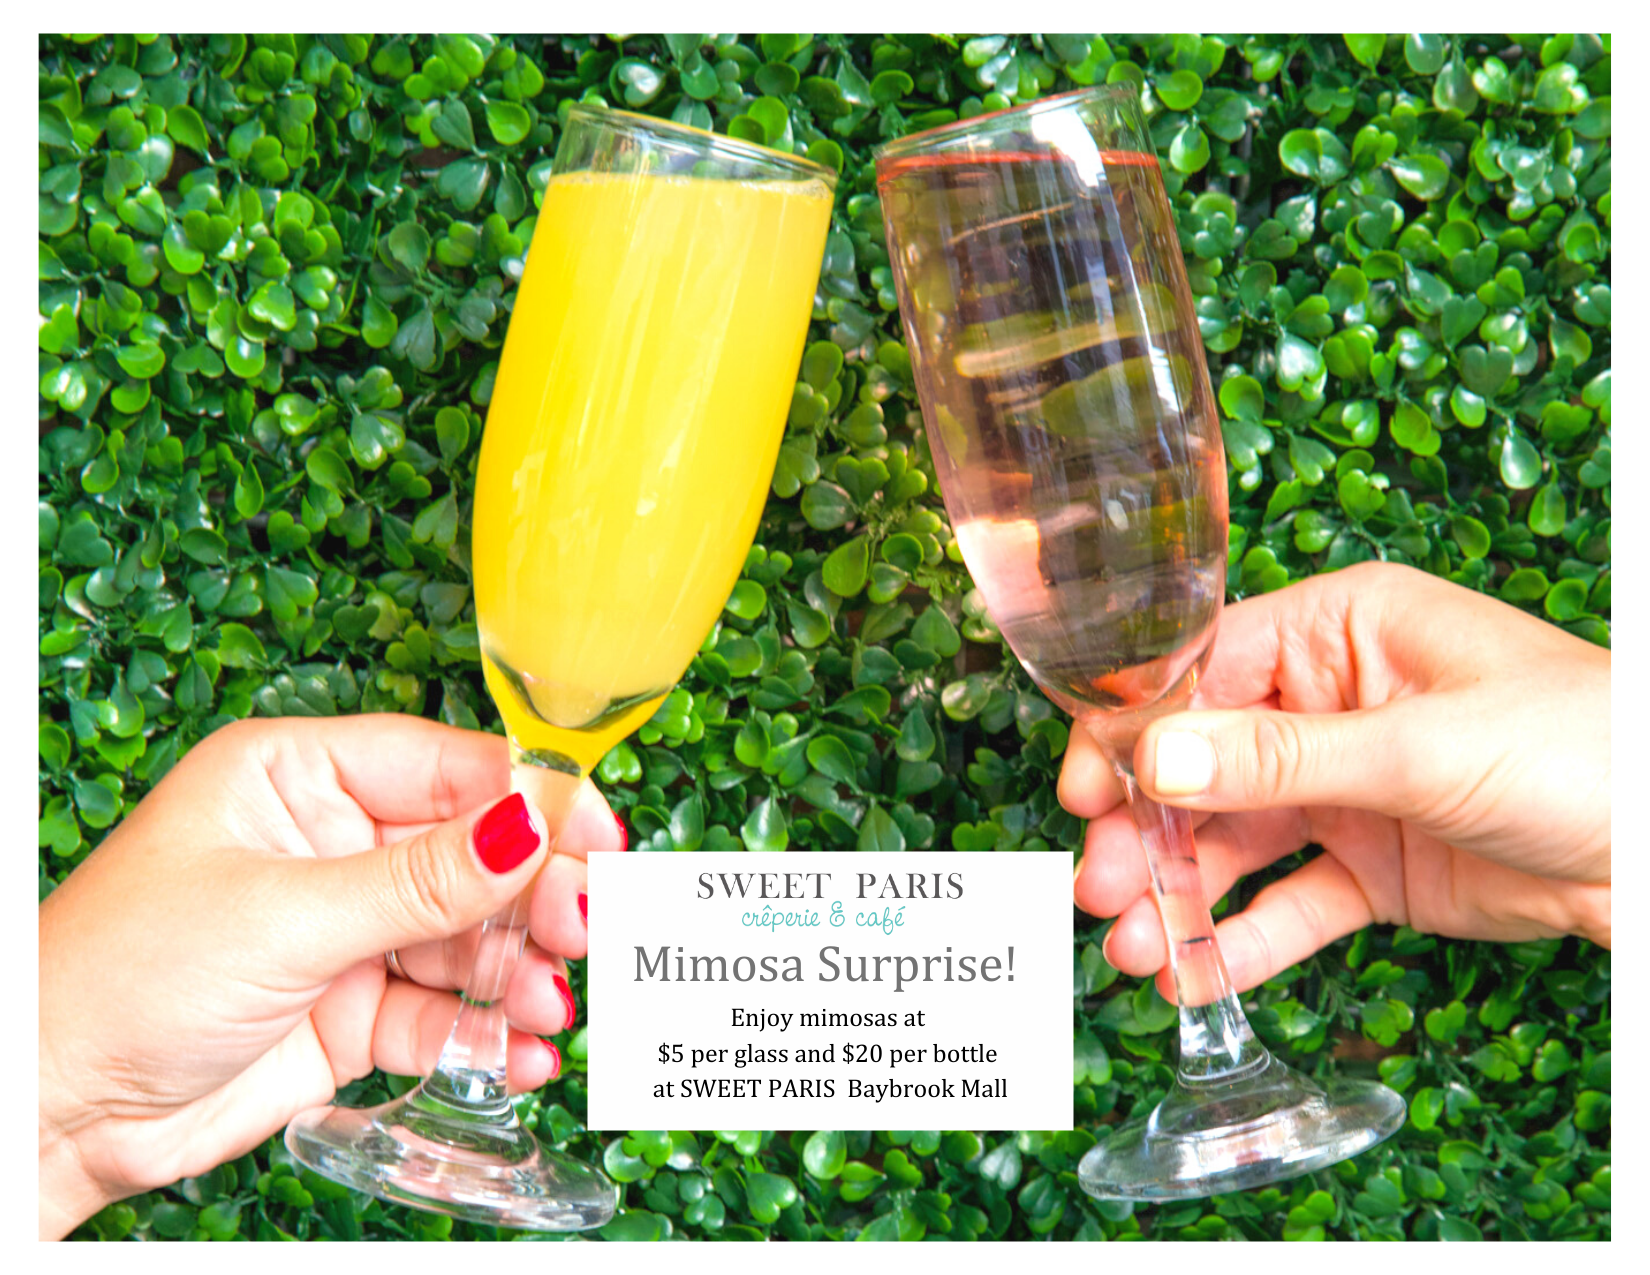 Mimosa Surprise! from Sweet Paris Creperie & Cafe